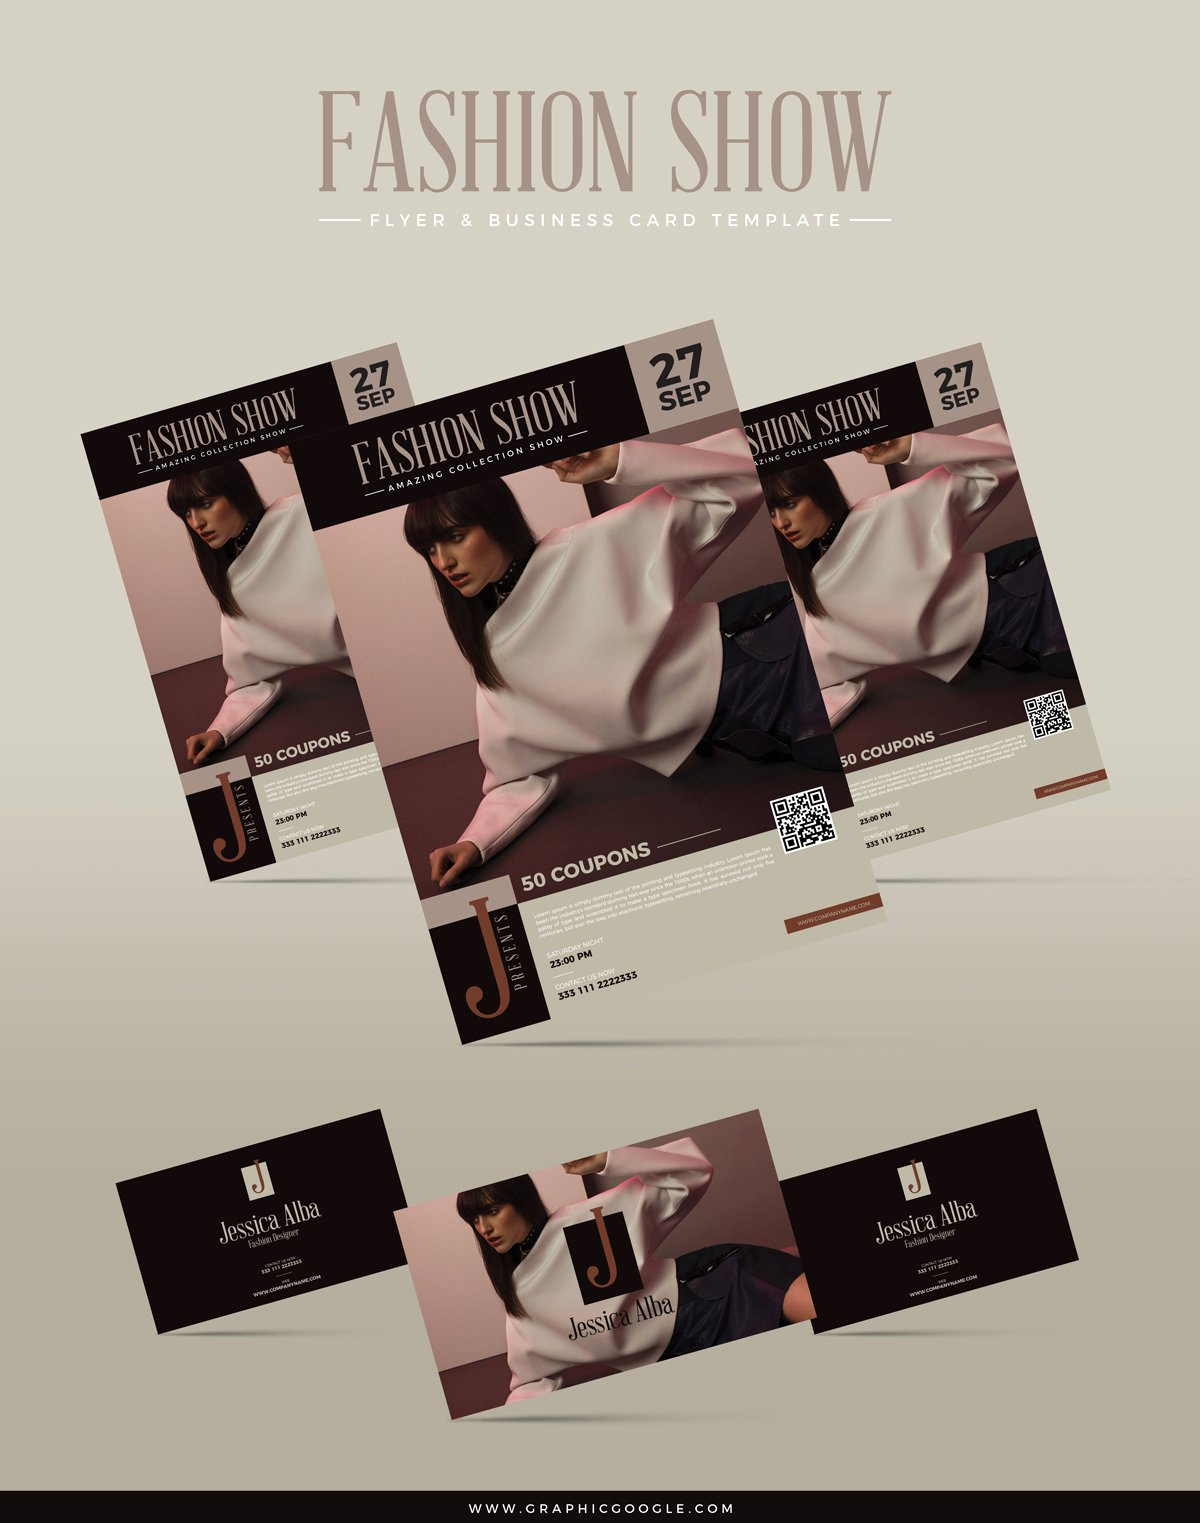 Fashion Show Flyer Template Best Of Free Fashion Show Flyer & Business Card Templategraphic